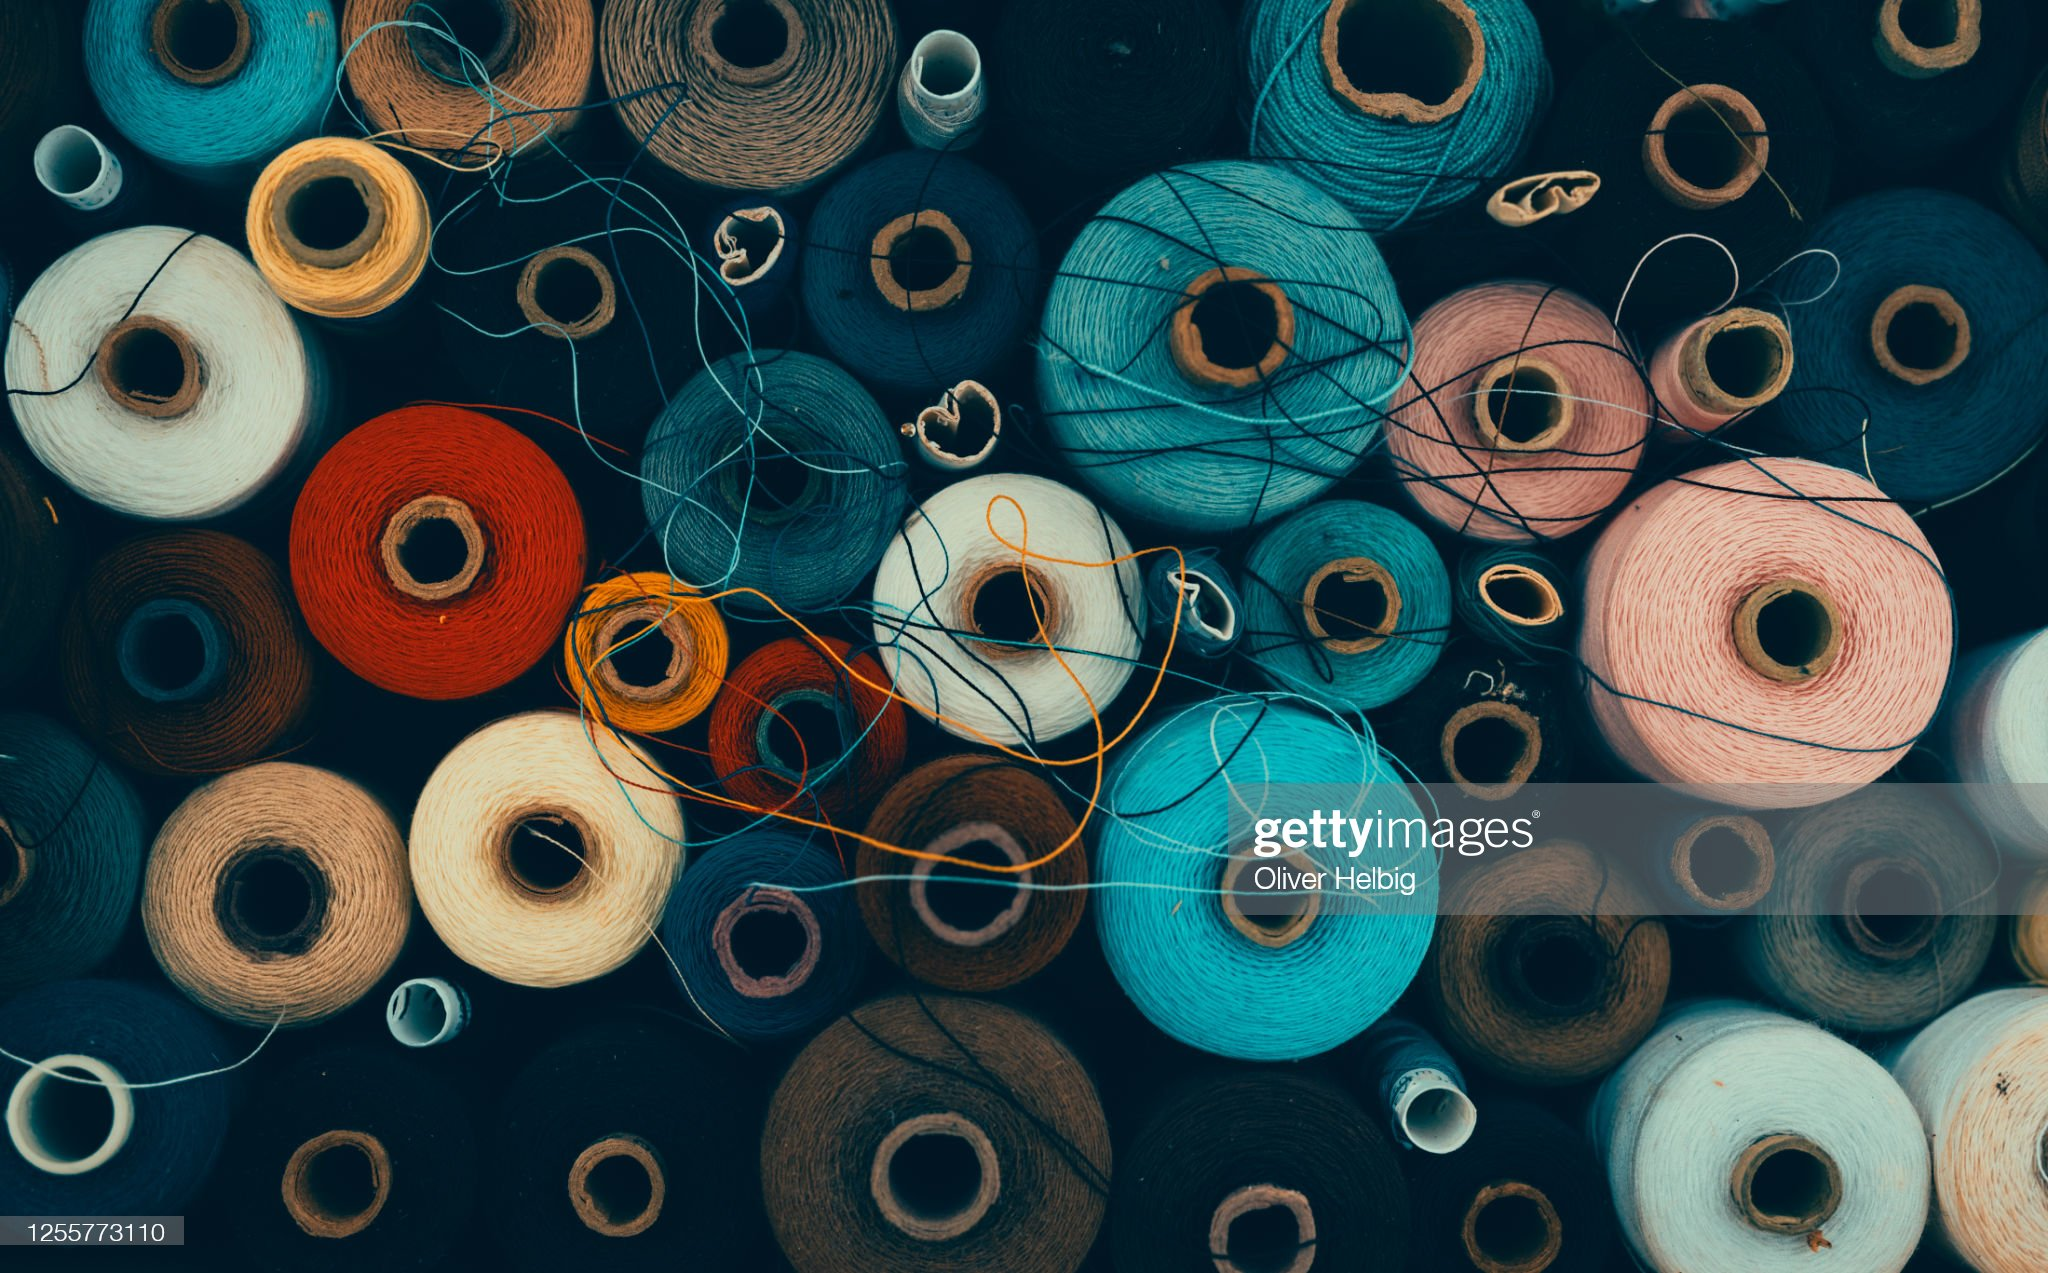 composition of sewing spools with colorful vibrant threads from above : Stock Photo